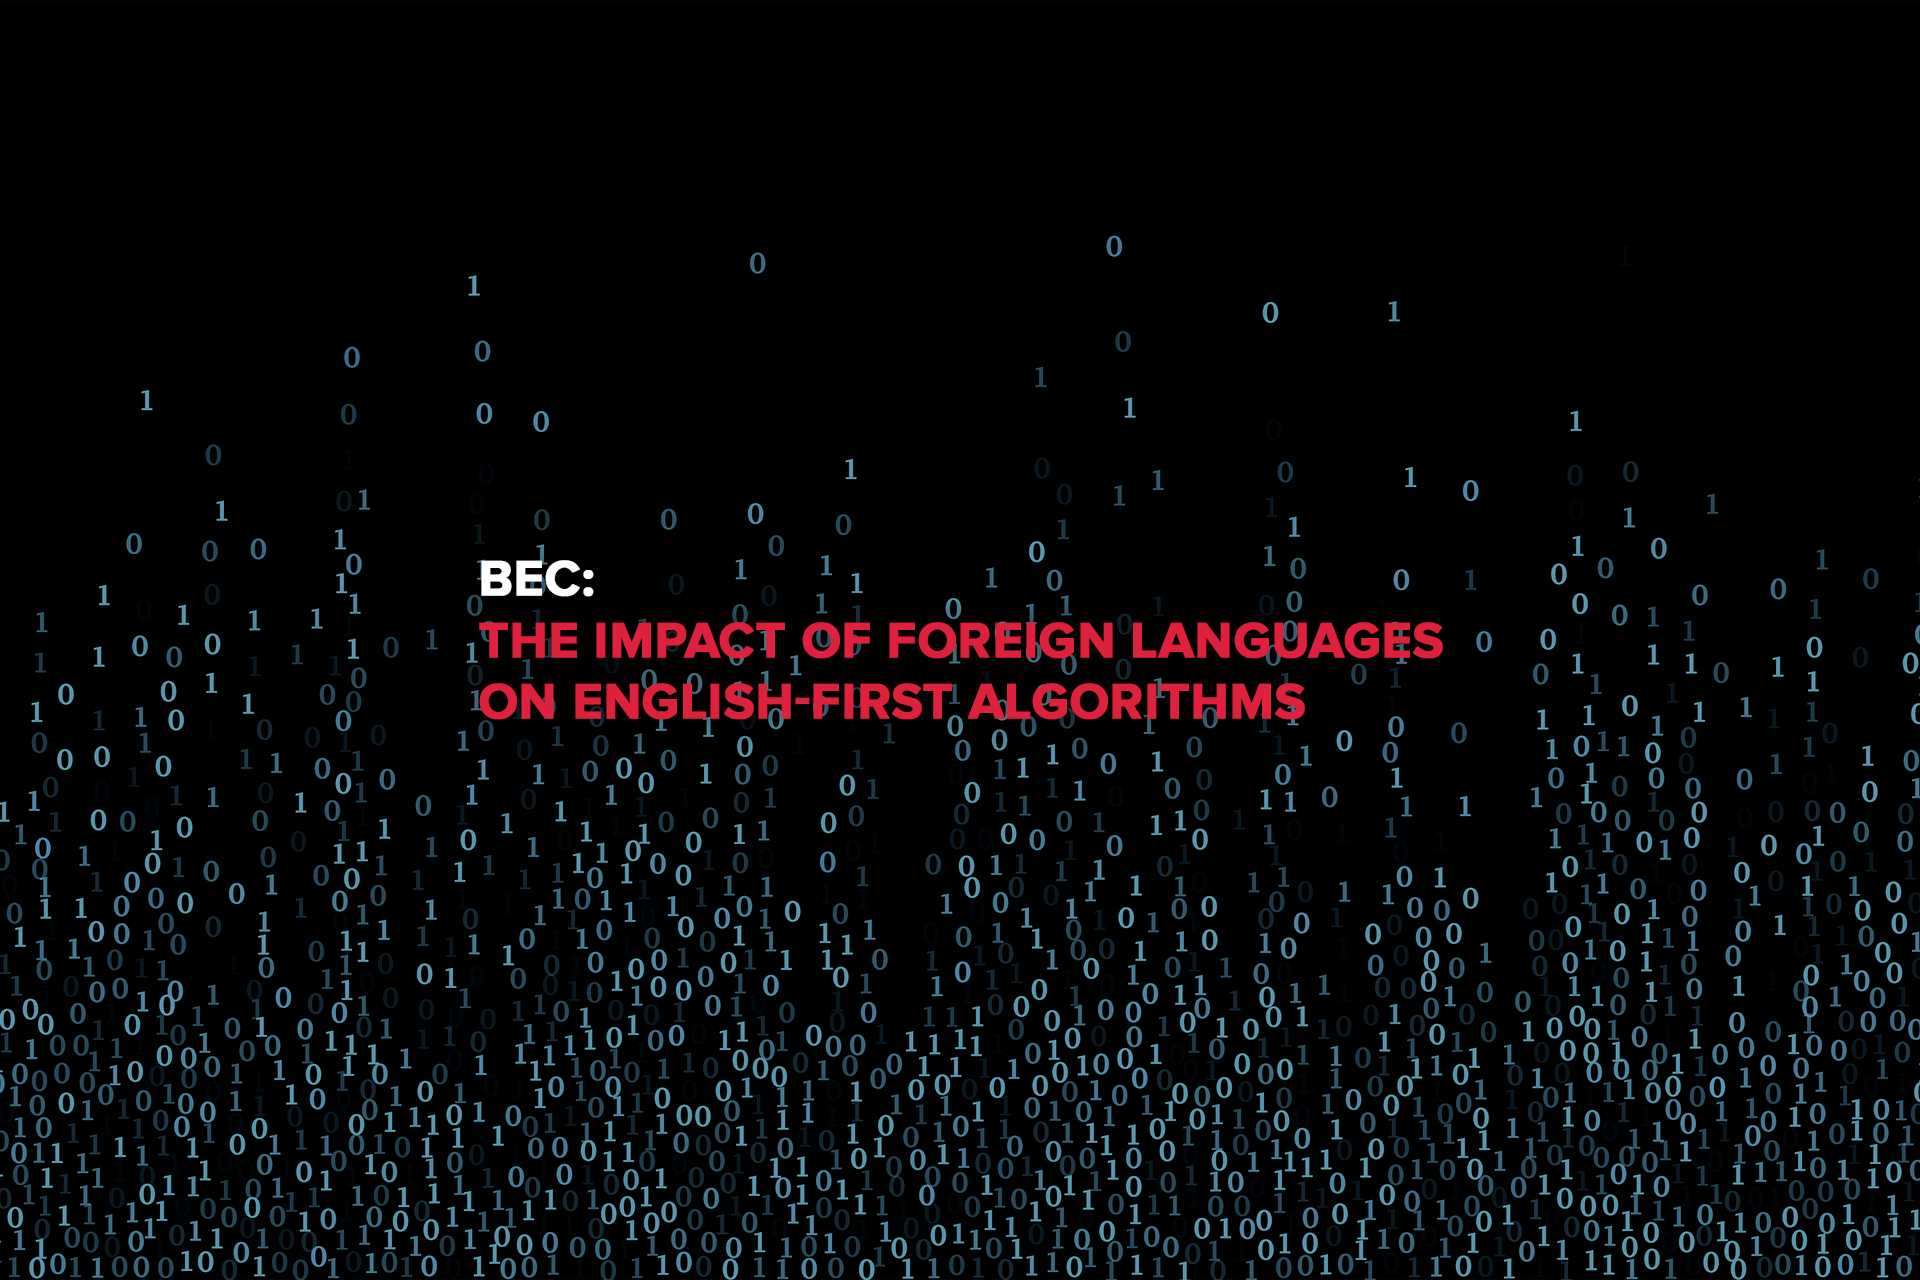 BEC: The Impact of Foreign Languages on English-First Algorithms